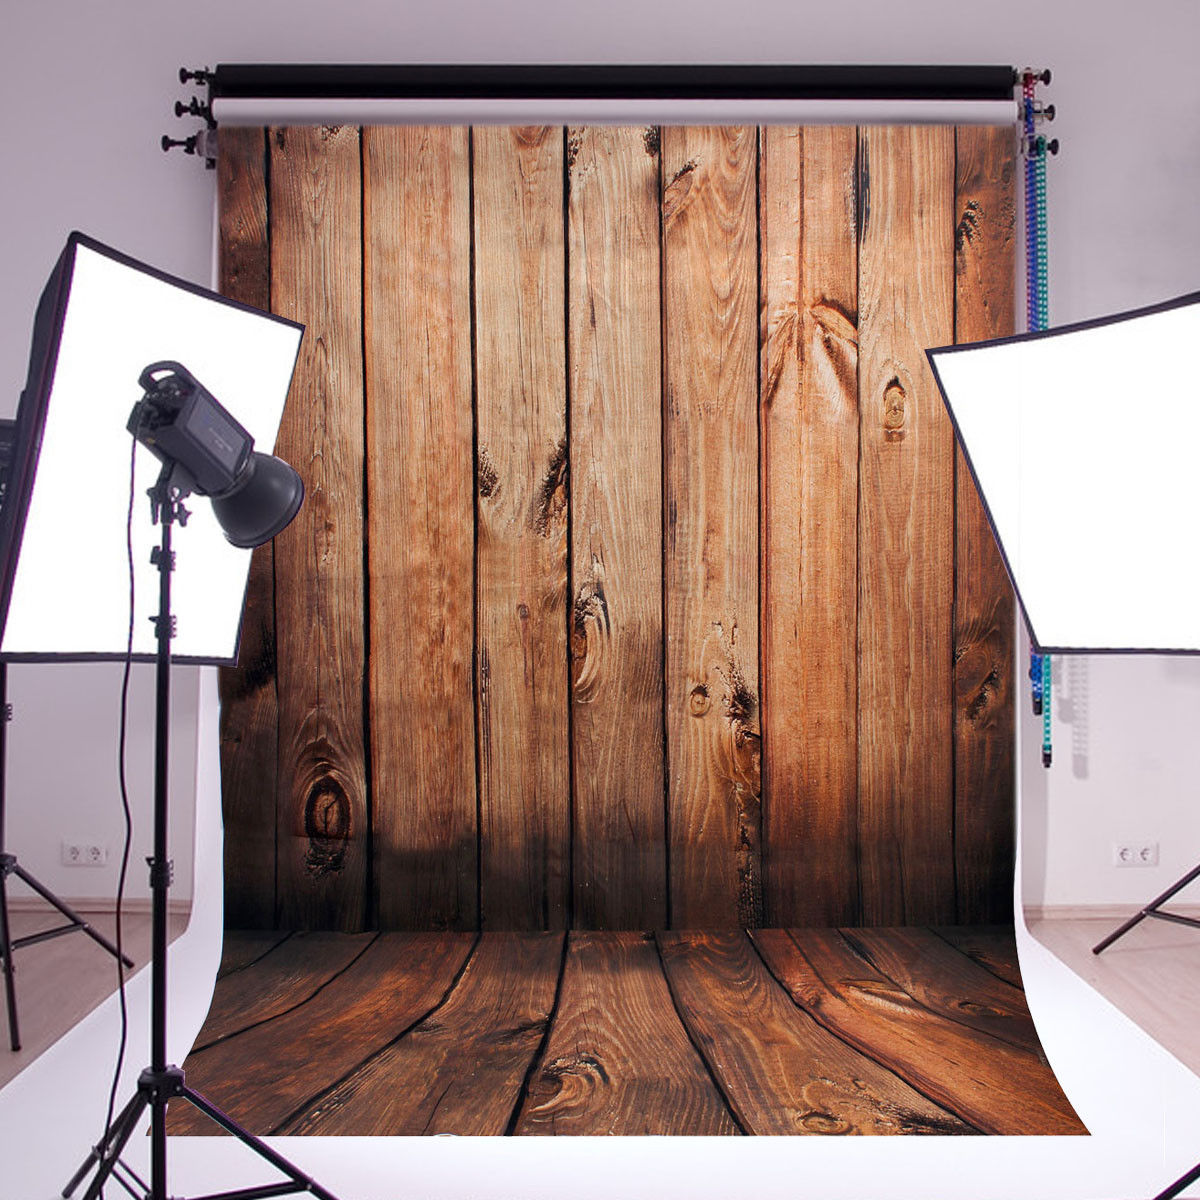 Photography Backdrops vinyl background for photo studio vintage wood baby background 2.1*1.5m Hot Sale 240x300cm custom beach wedding arch vinyl photo studio backdrops for portrait photography background for sale backdrop cm 5187